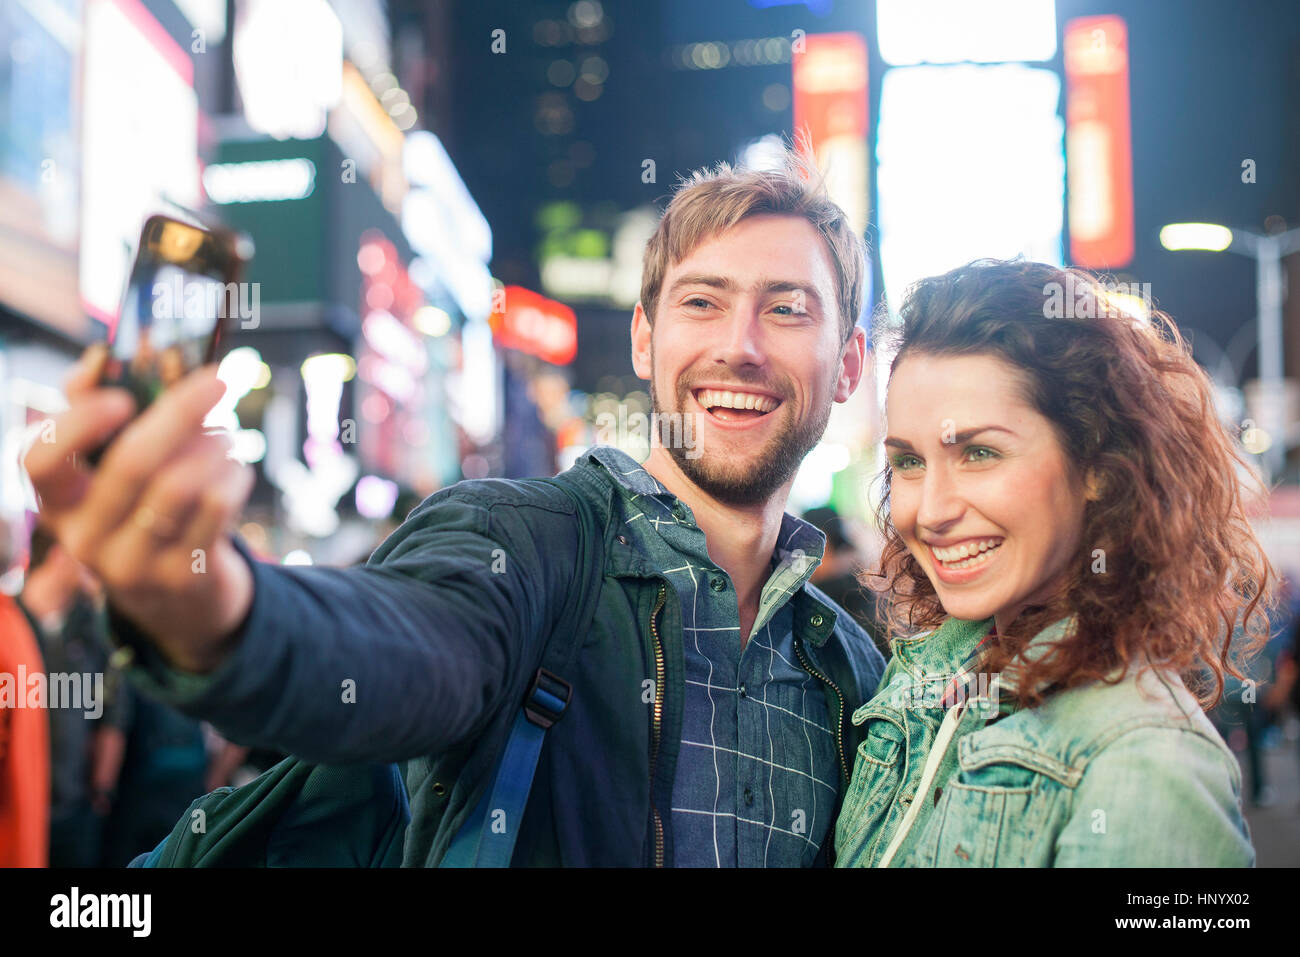 Junges Paar nehmen Selfie am Times Square, New York City, New York, USA Stockbild